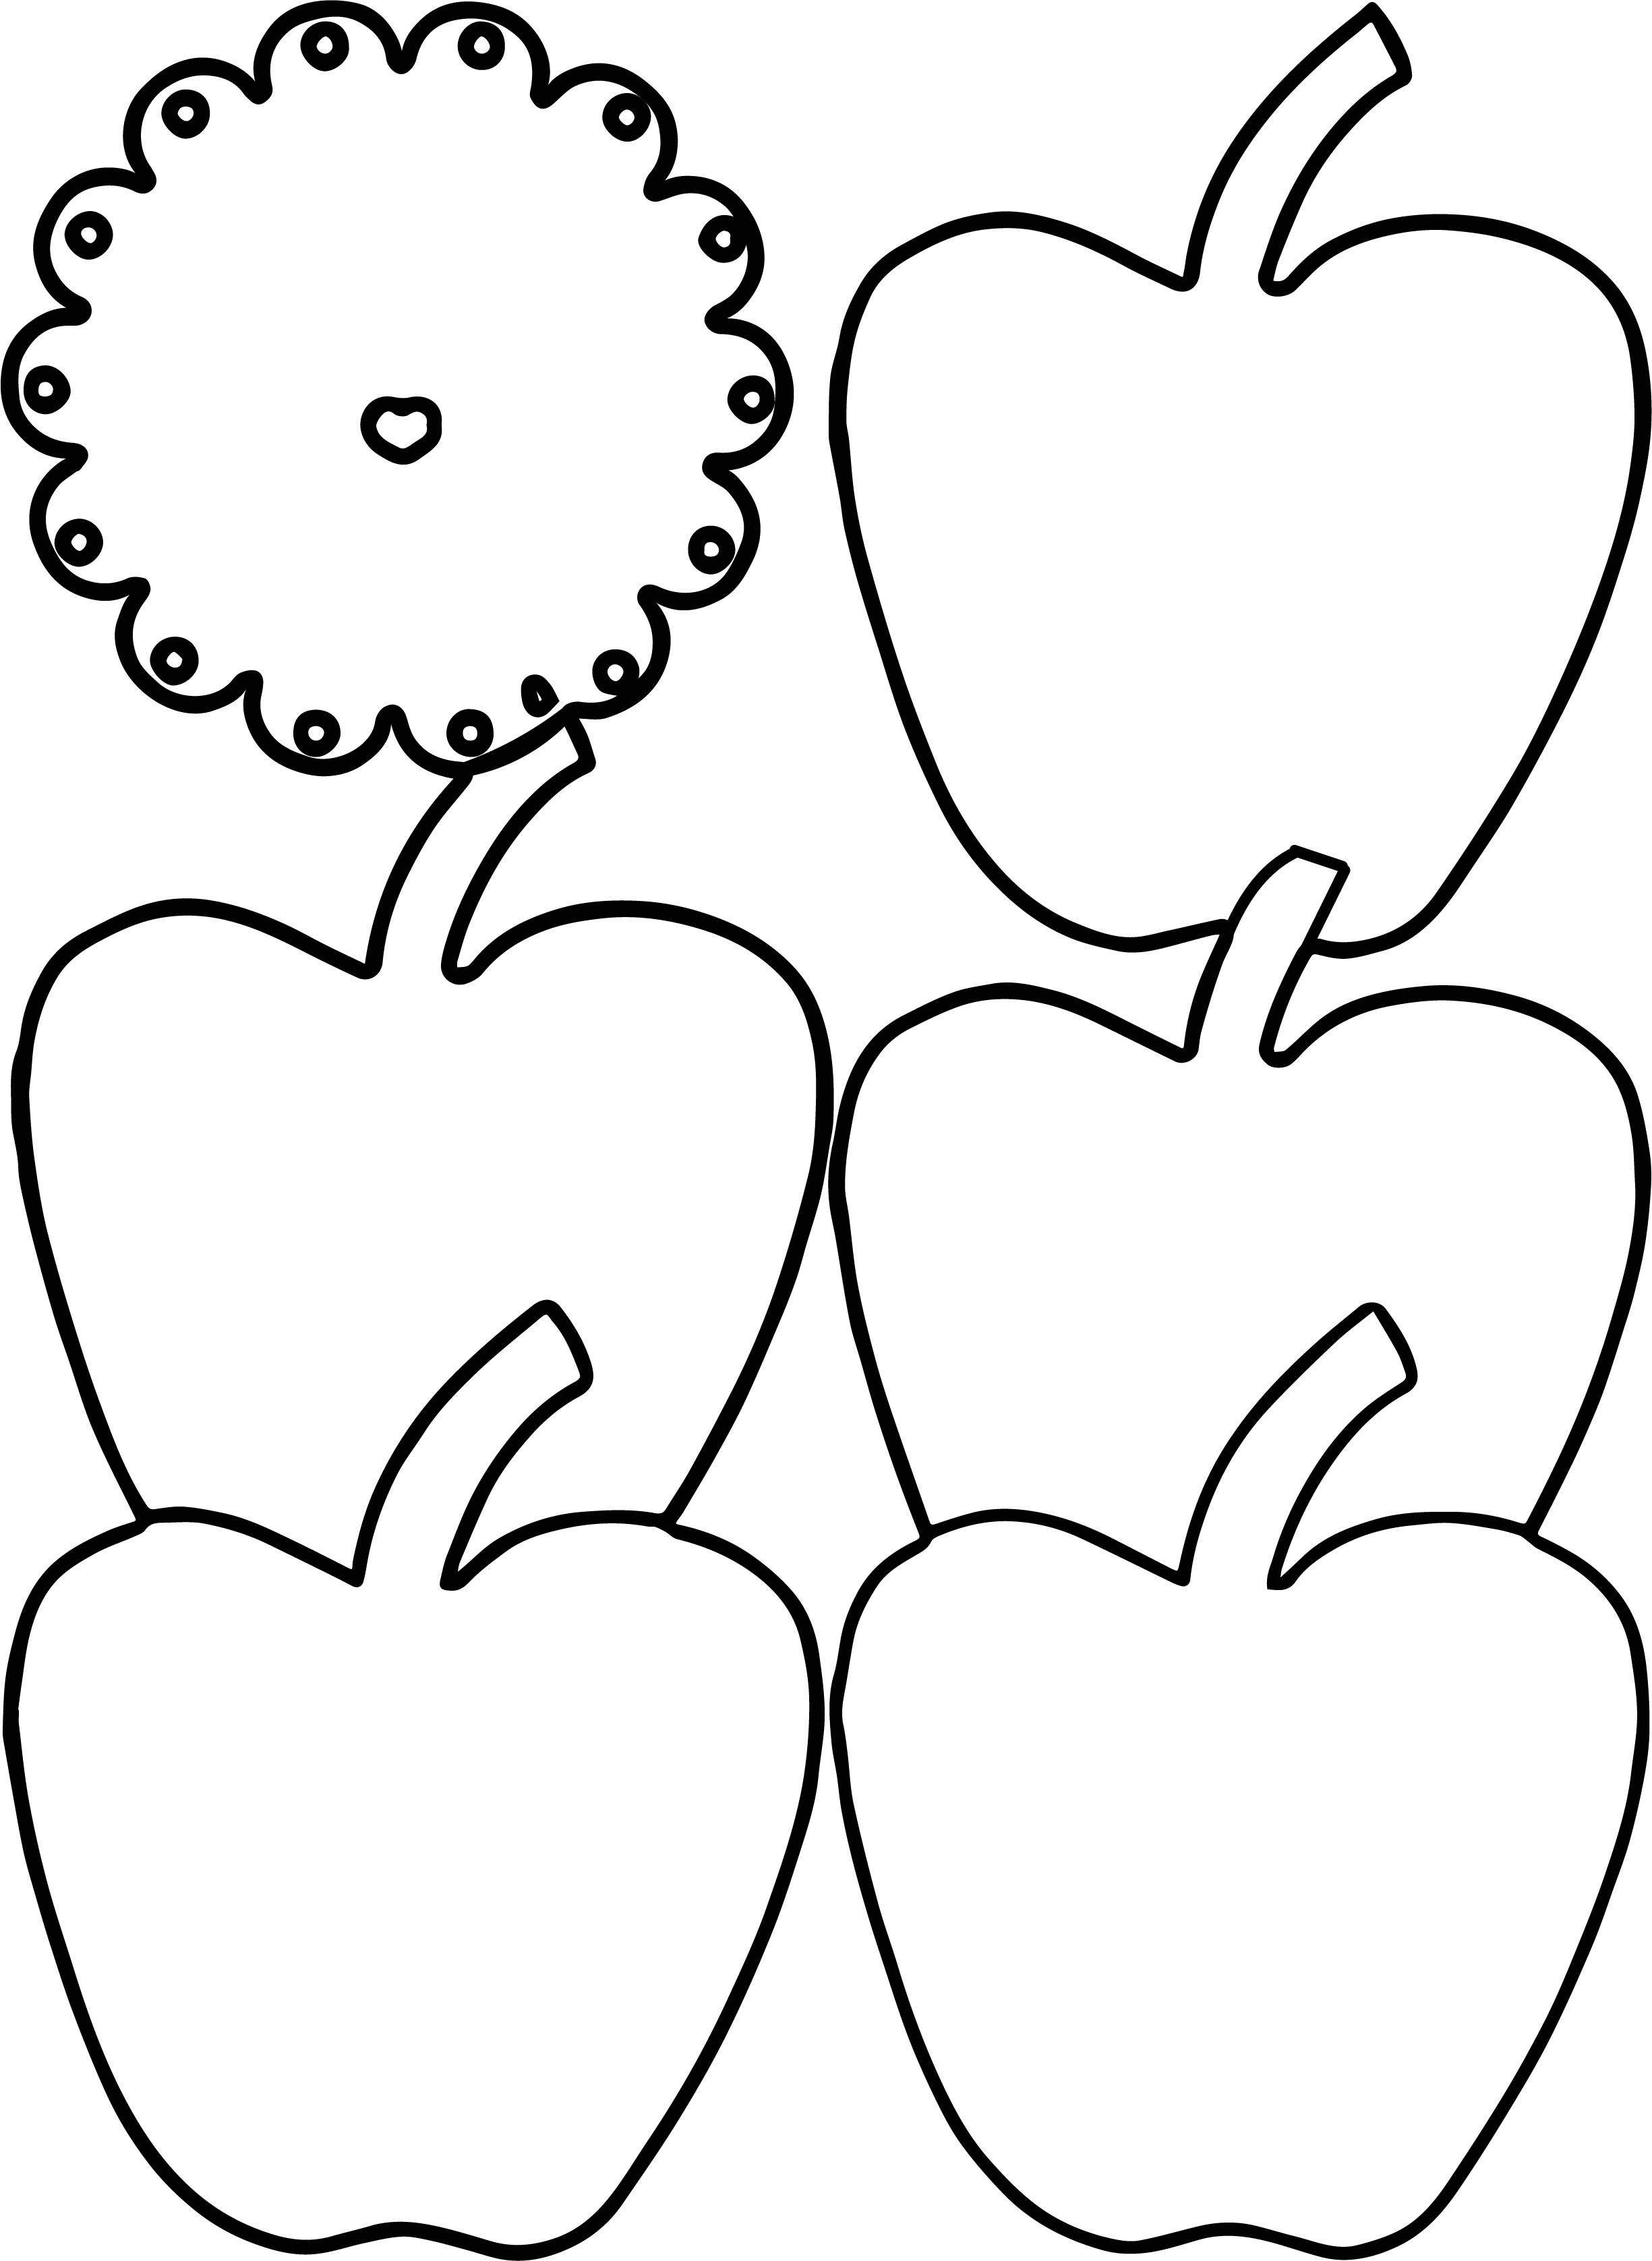 Apple In Shades Coloring Page